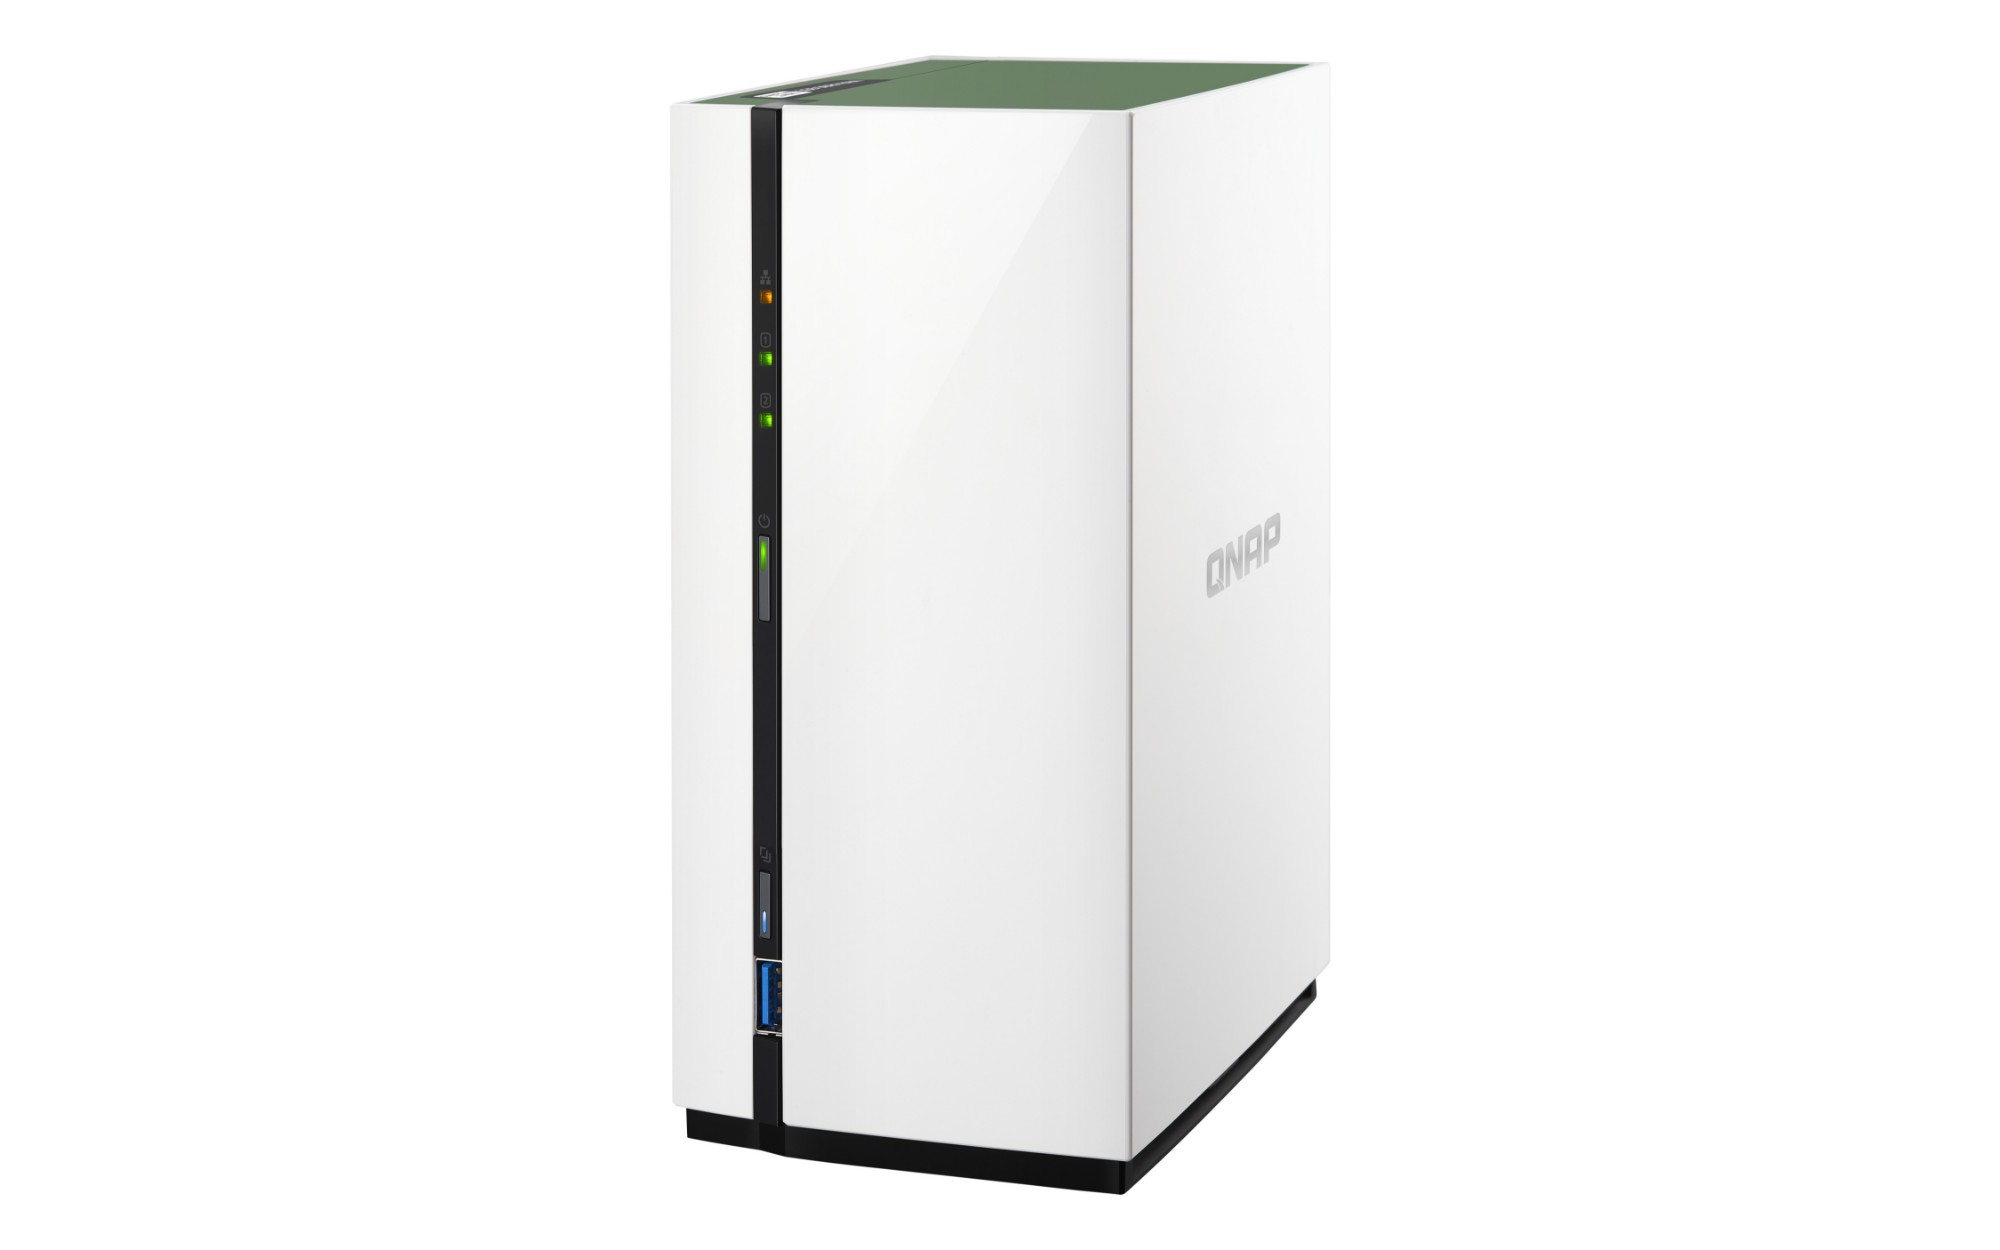 QNAP TS-228A 12TB 2x6TB Seagate IronWolf 2 Bay NAS Desktop Ethernet LAN Mini Tower White